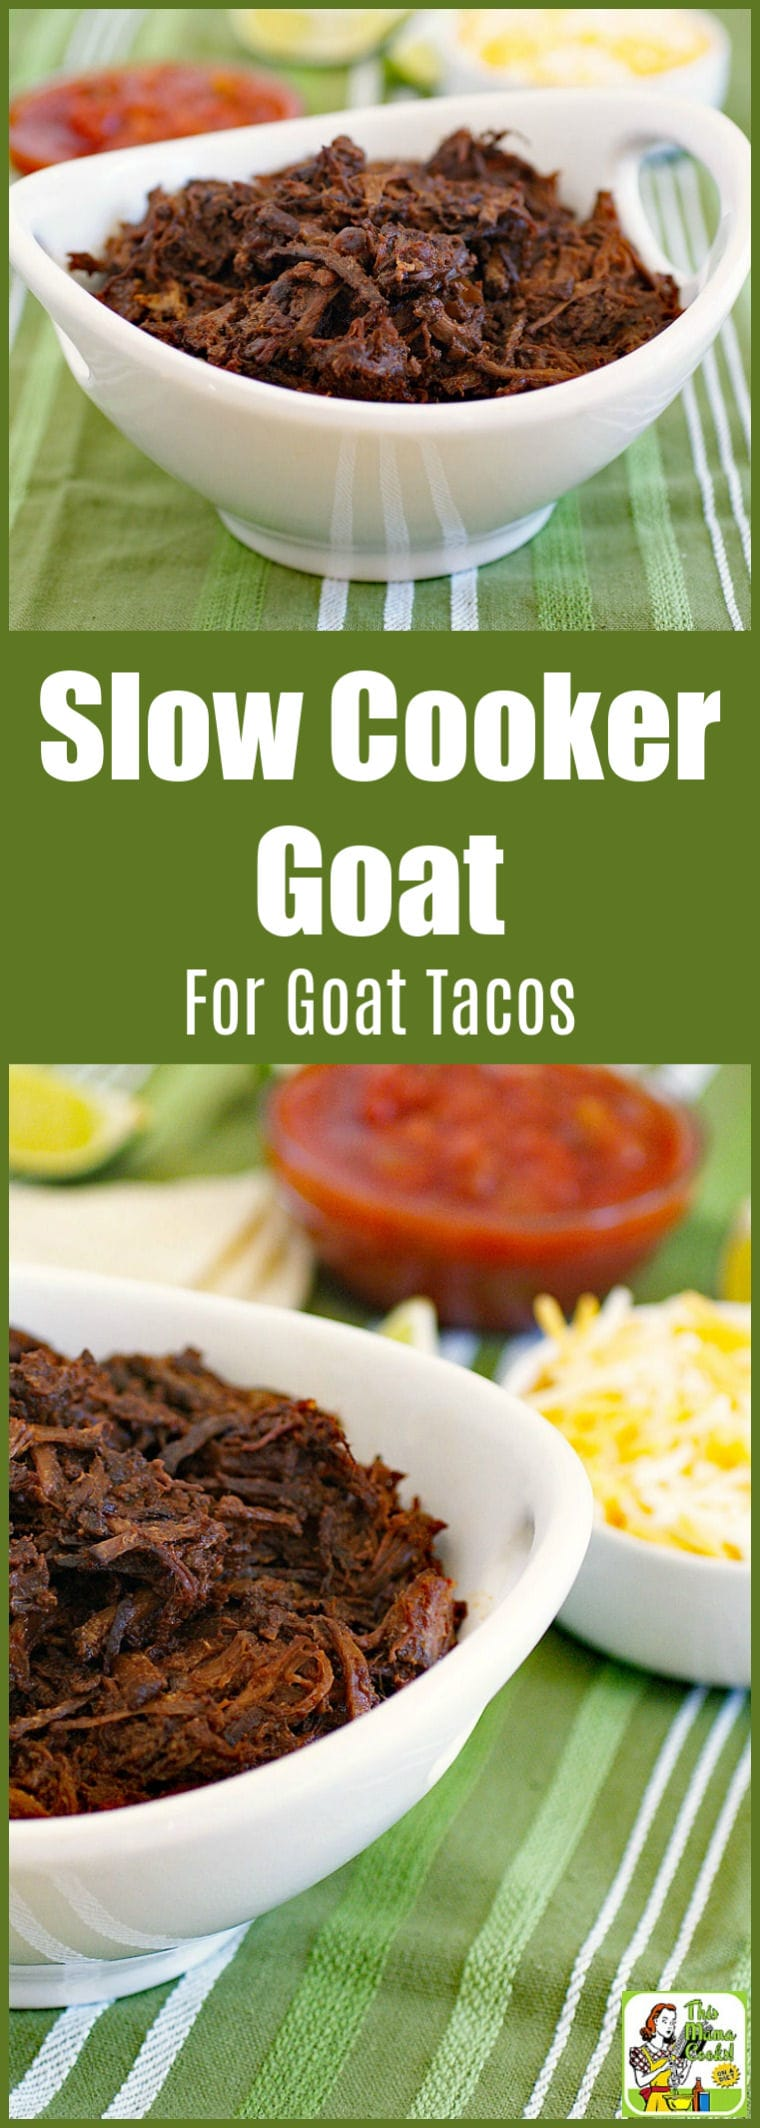 This Slow Cooker Goat recipe makes amazing shredded beef & chicken, too! This crock-pot shredded goat recipe is easy to make and healthy. #slowcooker #crockpot #goatrecipes #recipe #recipes #goatmeat #goatmeatrecipes #healthyrecipes